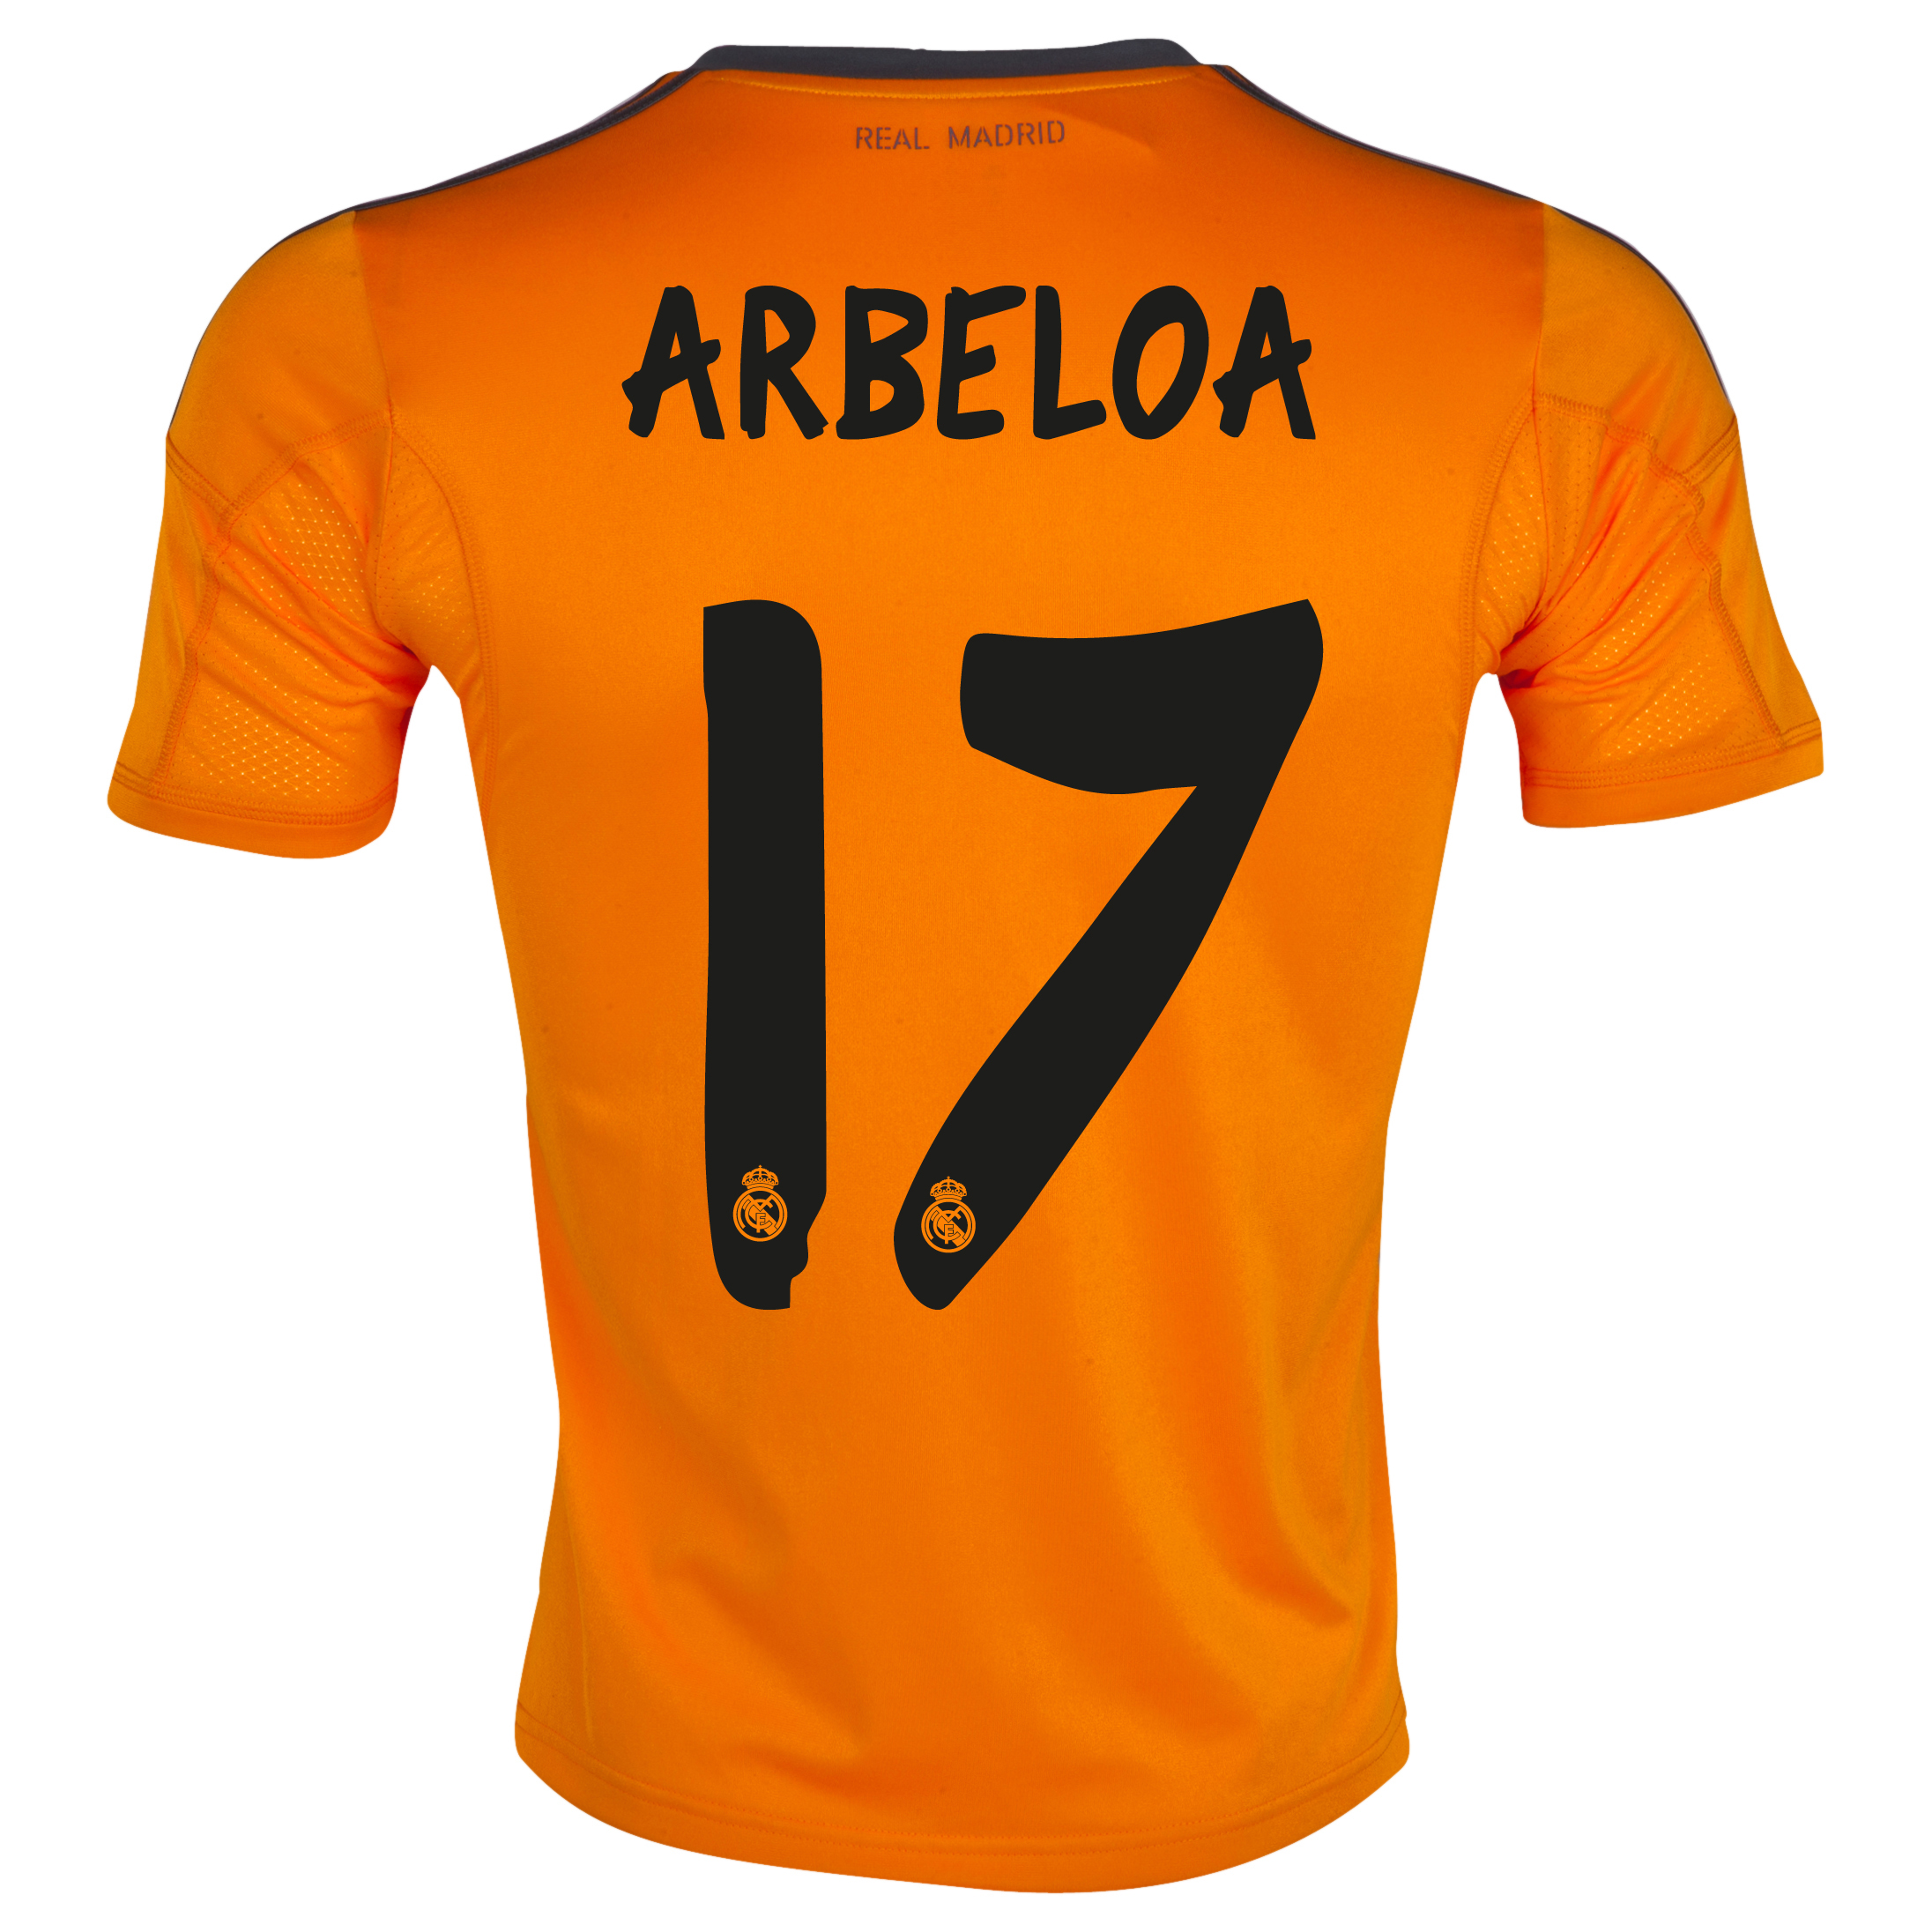 Real Madrid Third Shirt 2013/14 with Arbeloa 17 printing